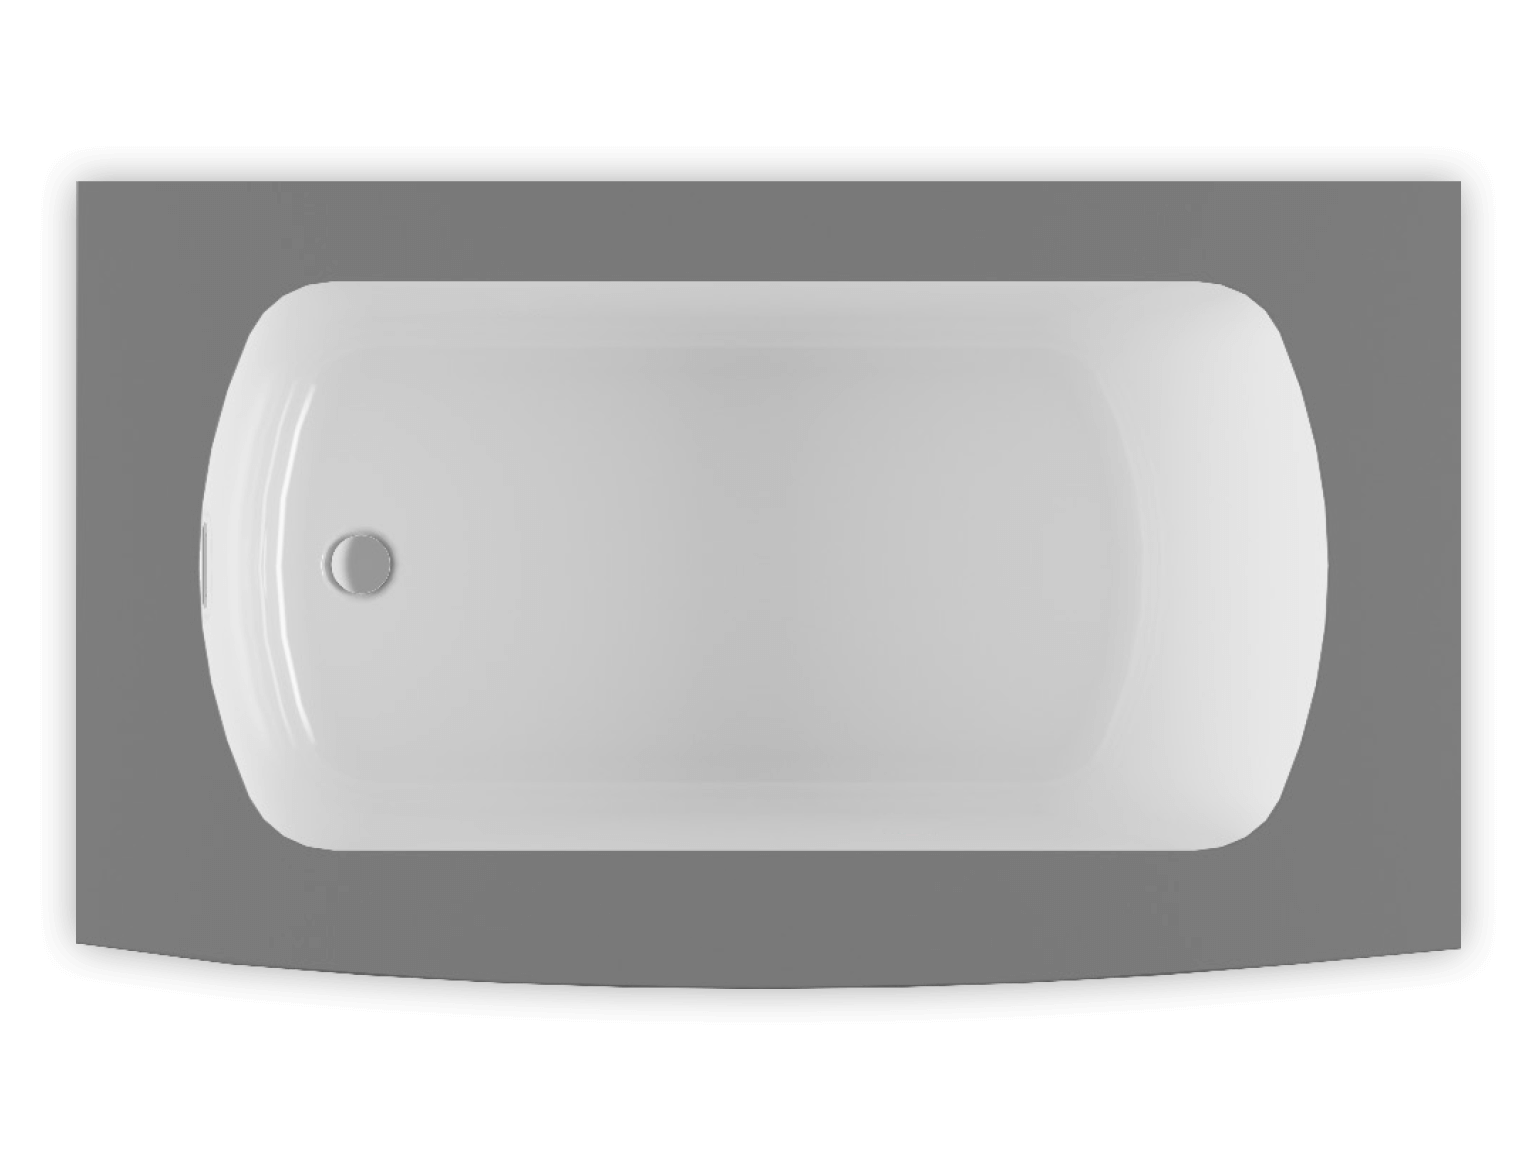 Monarch 6037L air jet bathtub for your modern bathroom